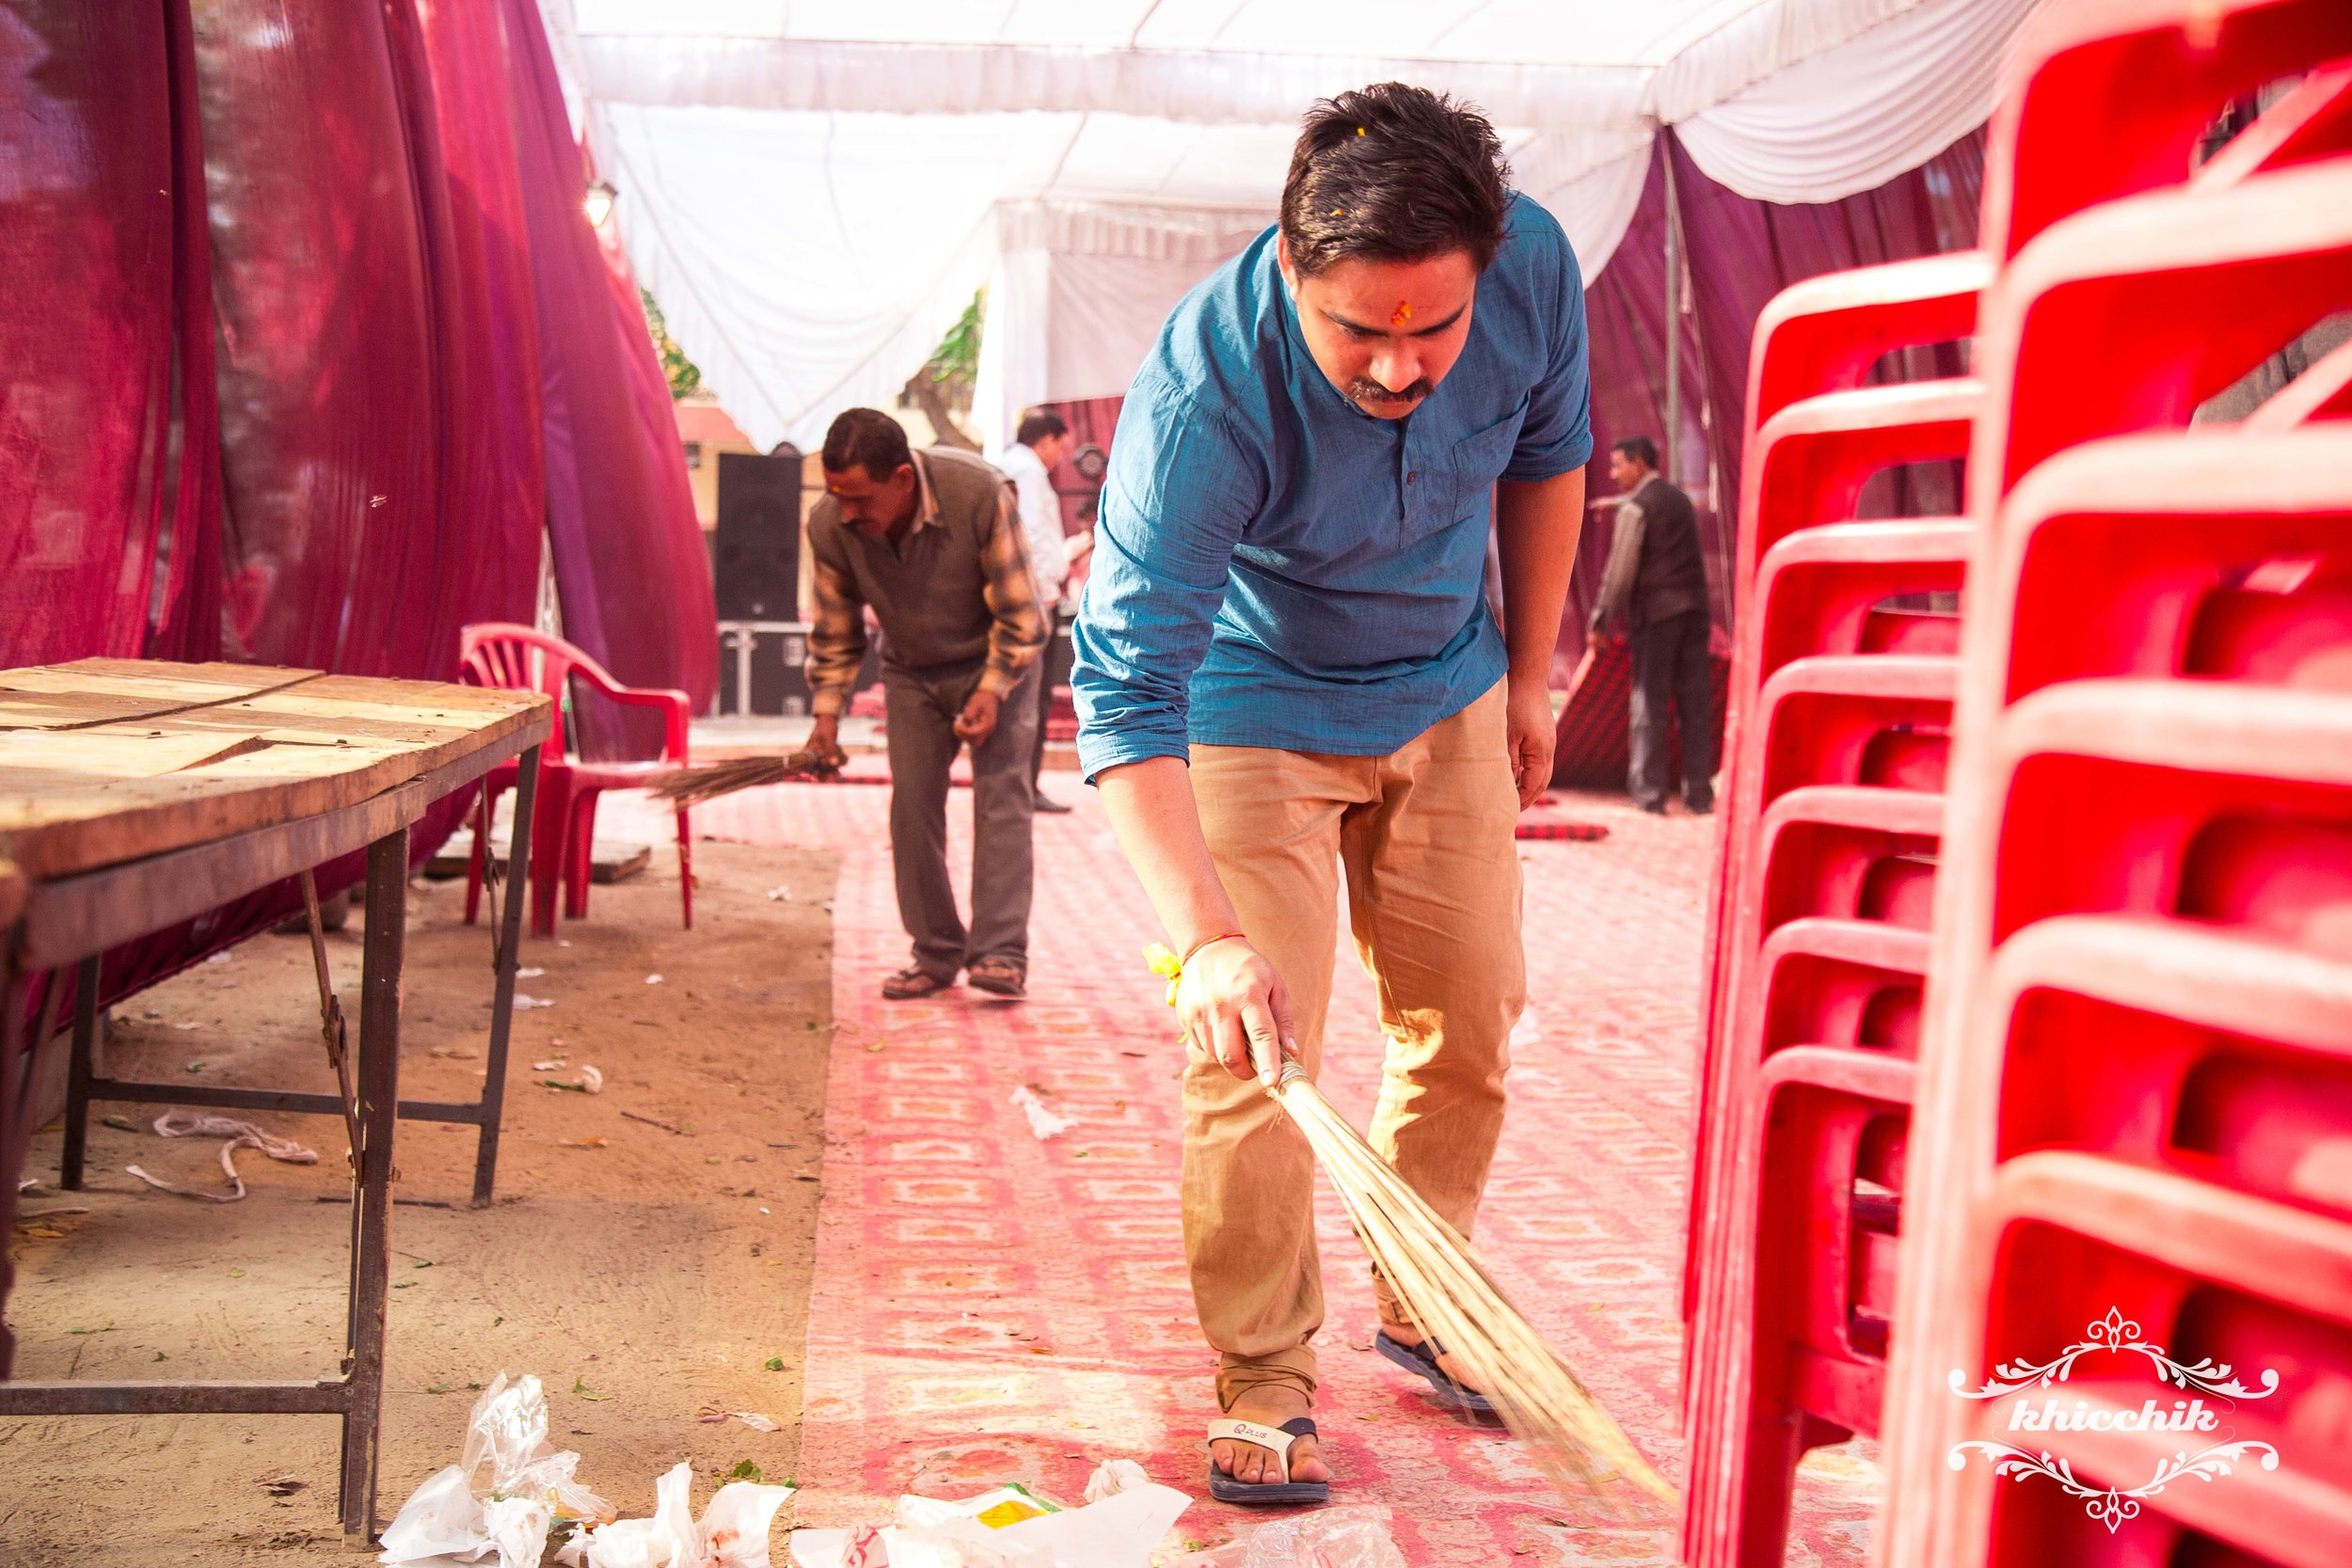 A groom that brooms at his own wedding is uber cool.